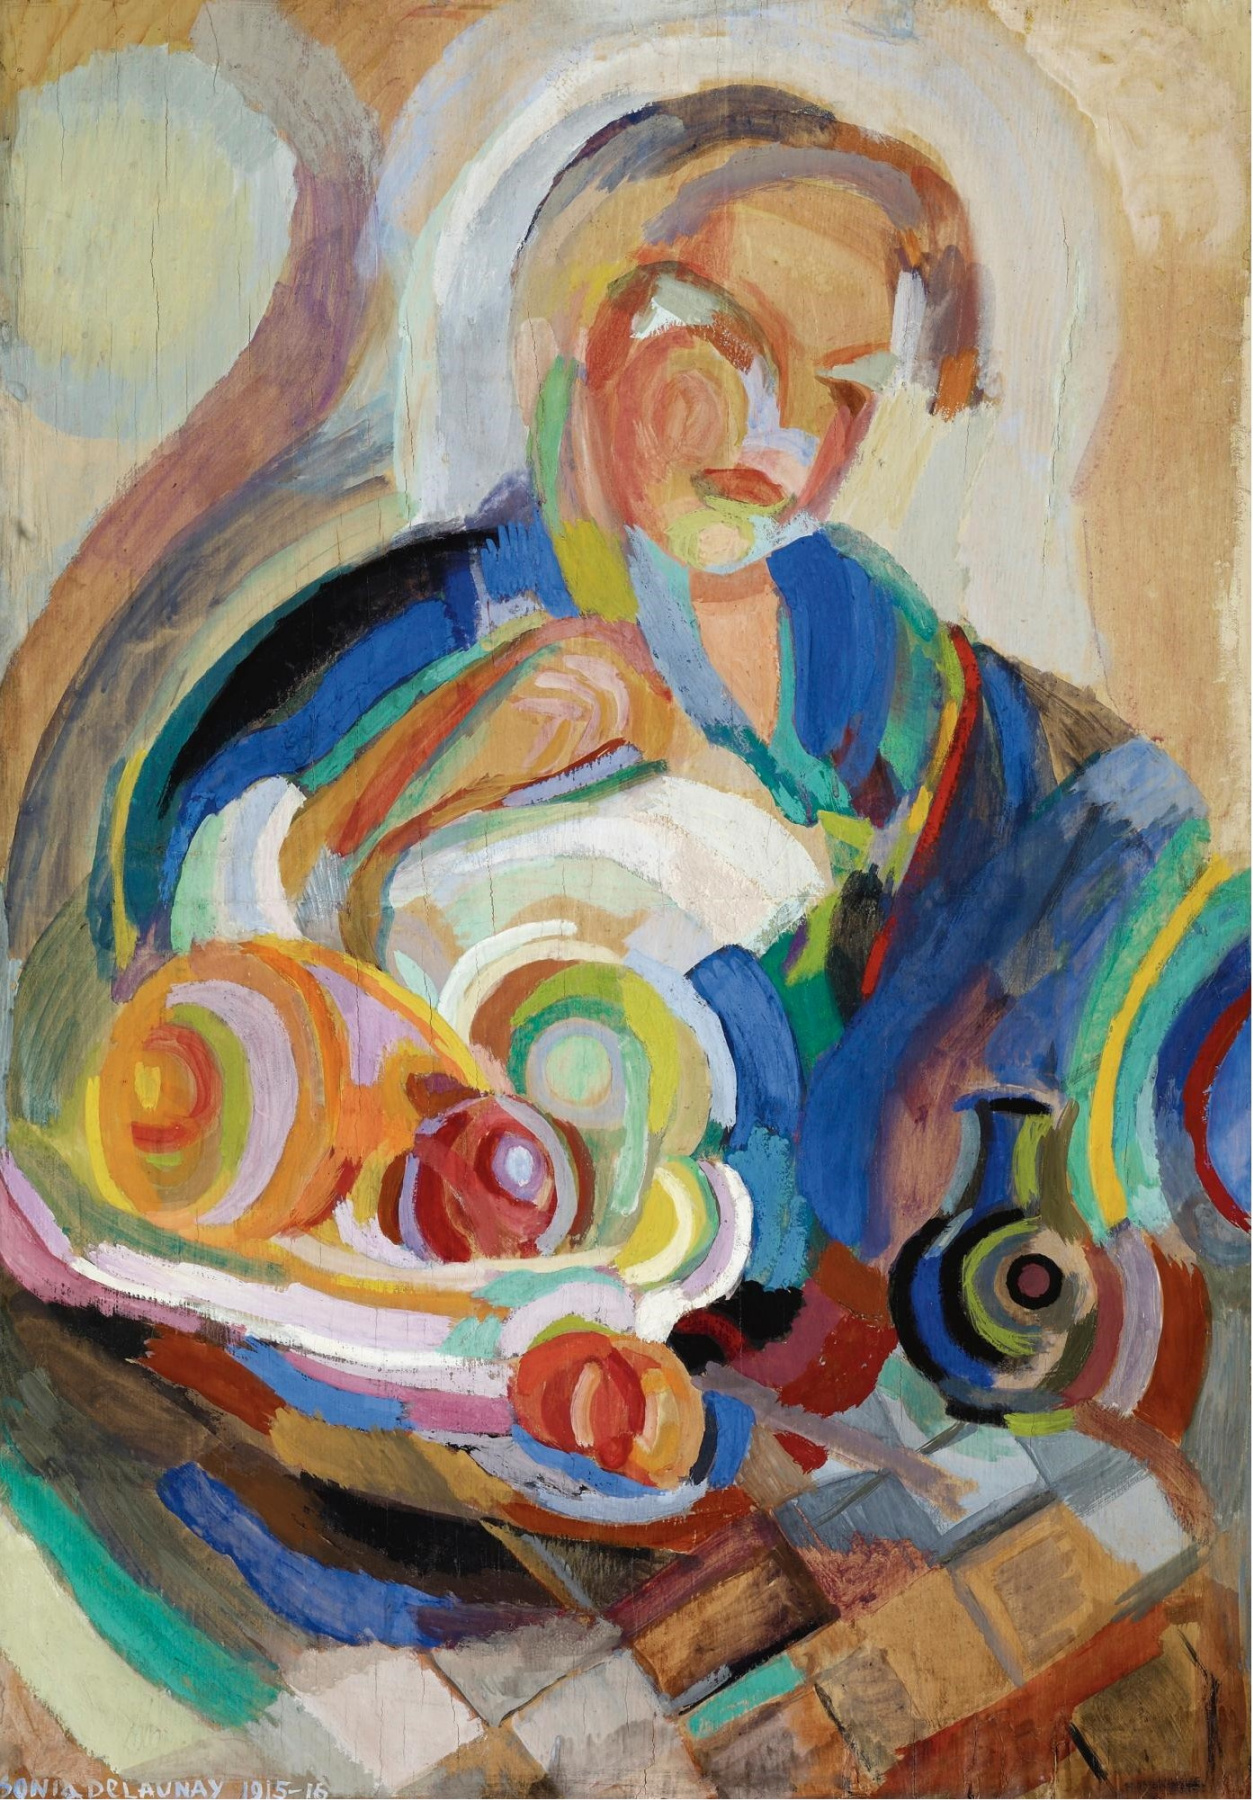 Sonia Delaunay. Portugese Woman with Fruit